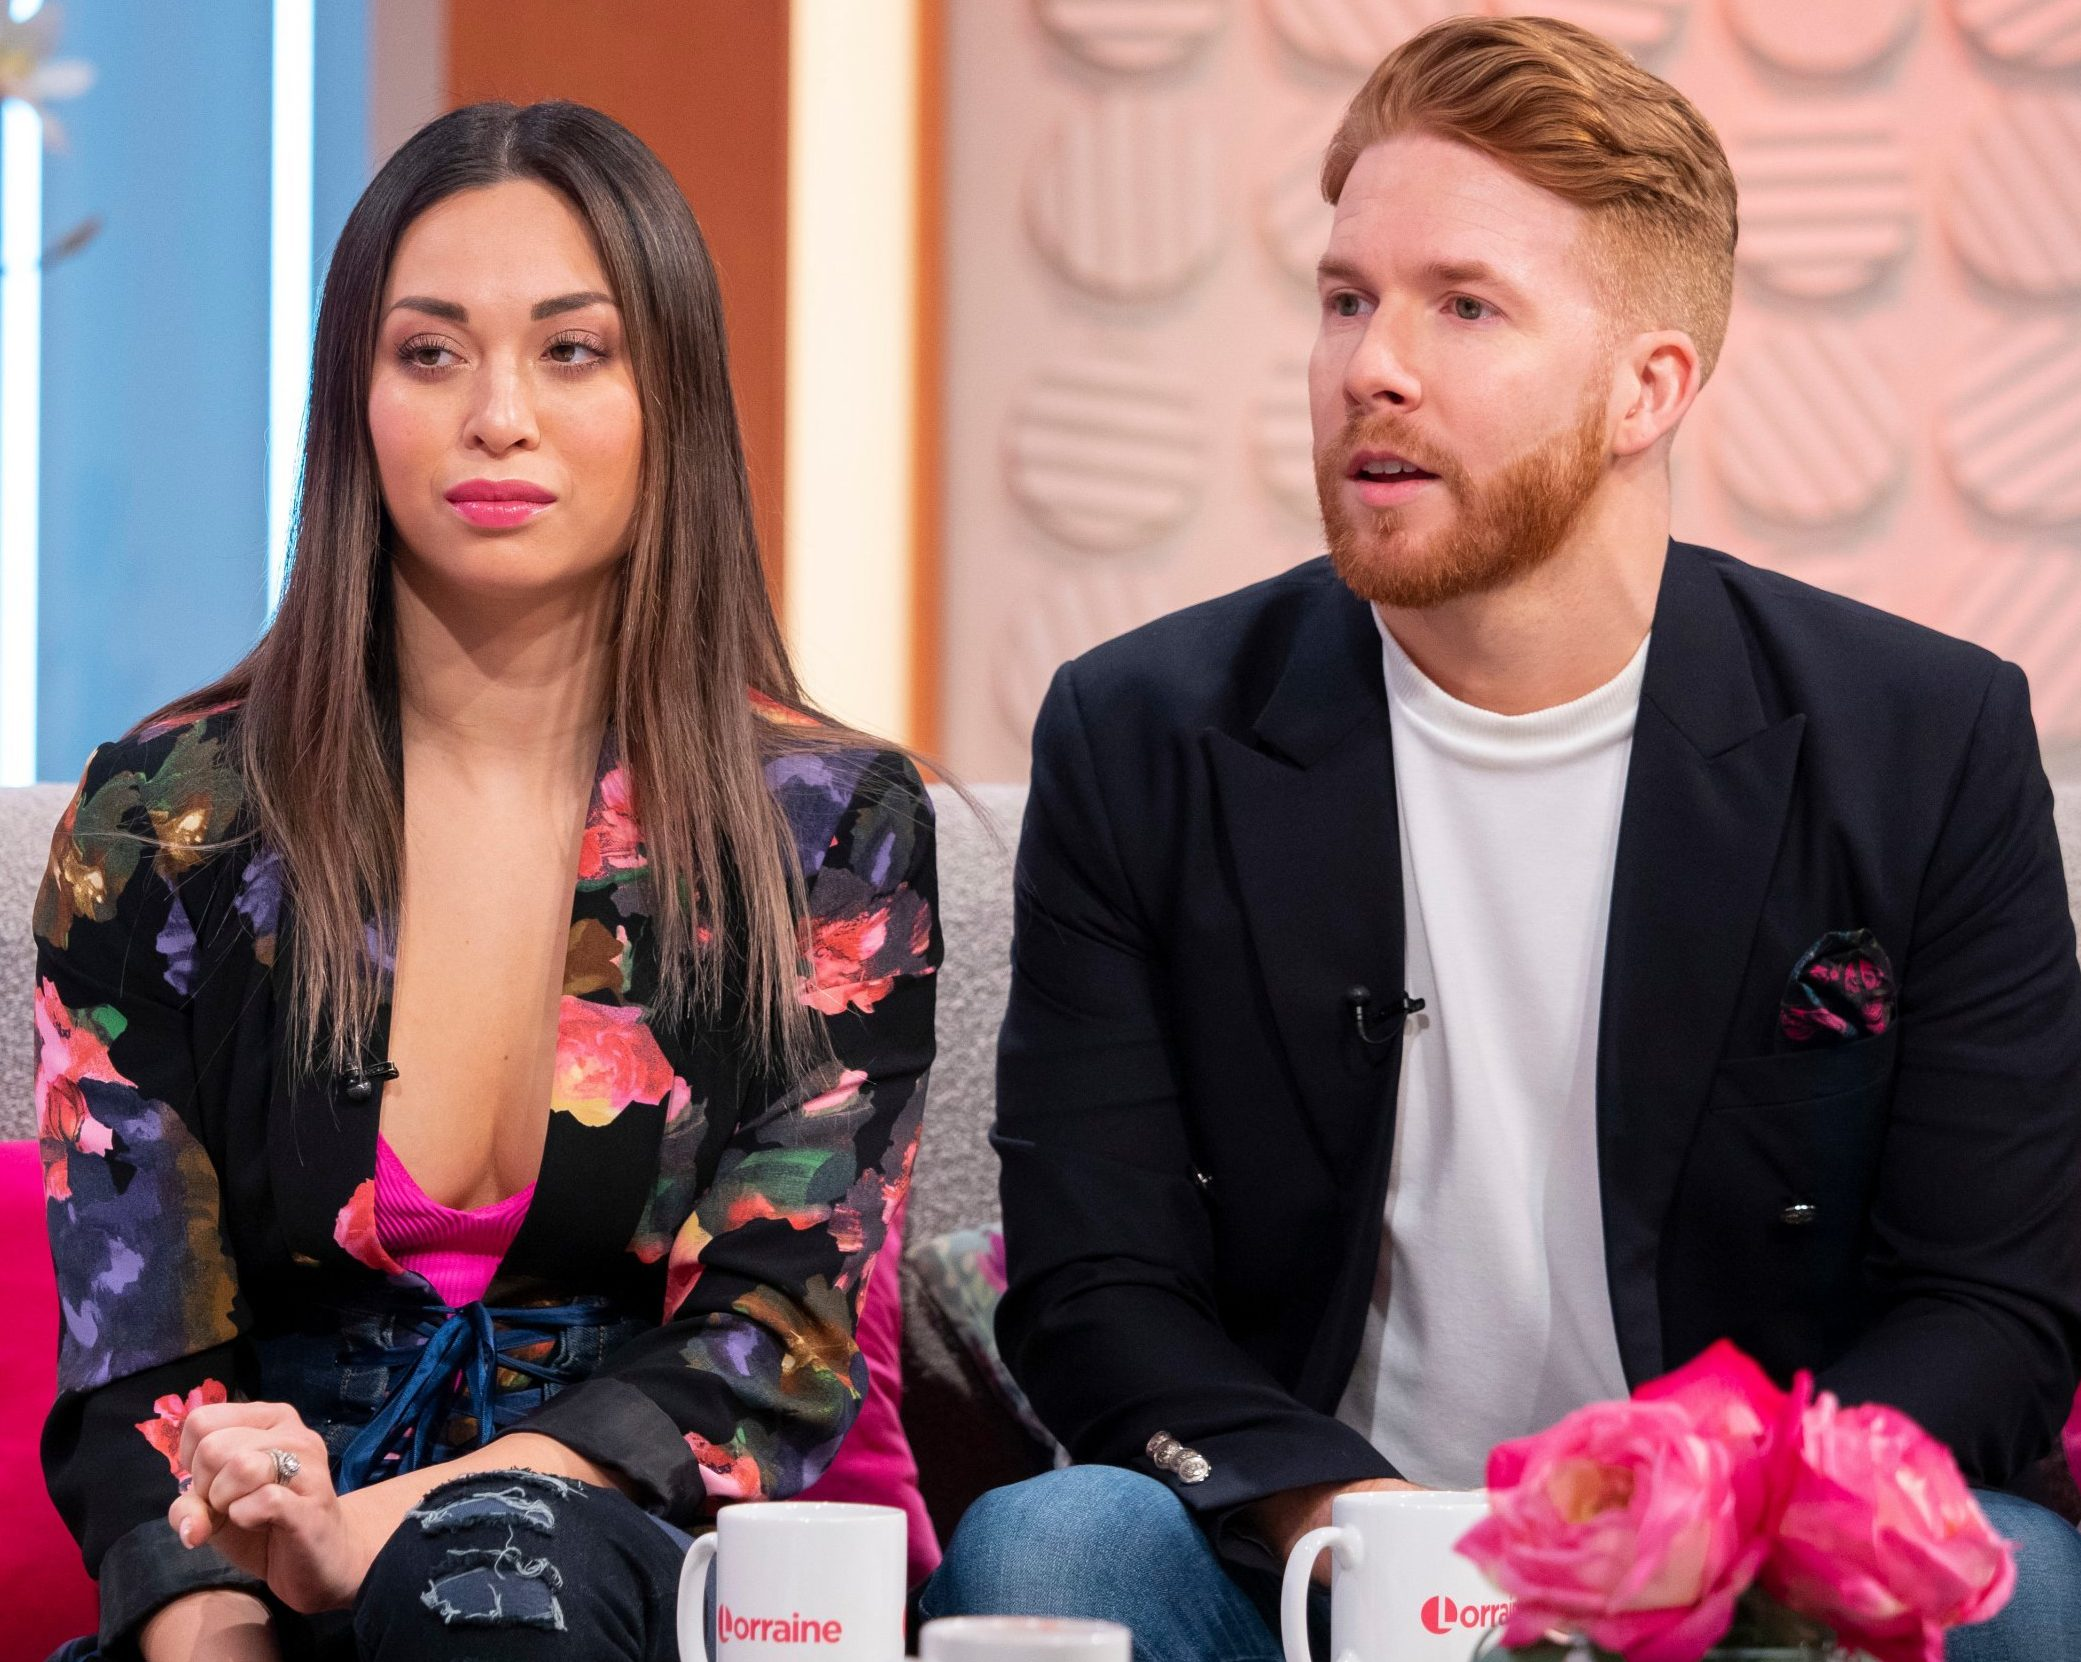 Editorial use only Mandatory Credit: Photo by Ken McKay/ITV/REX (10159692b) Katya Jones and Neil Jones 'Lorraine' TV show, London, UK - 19 Mar 2019